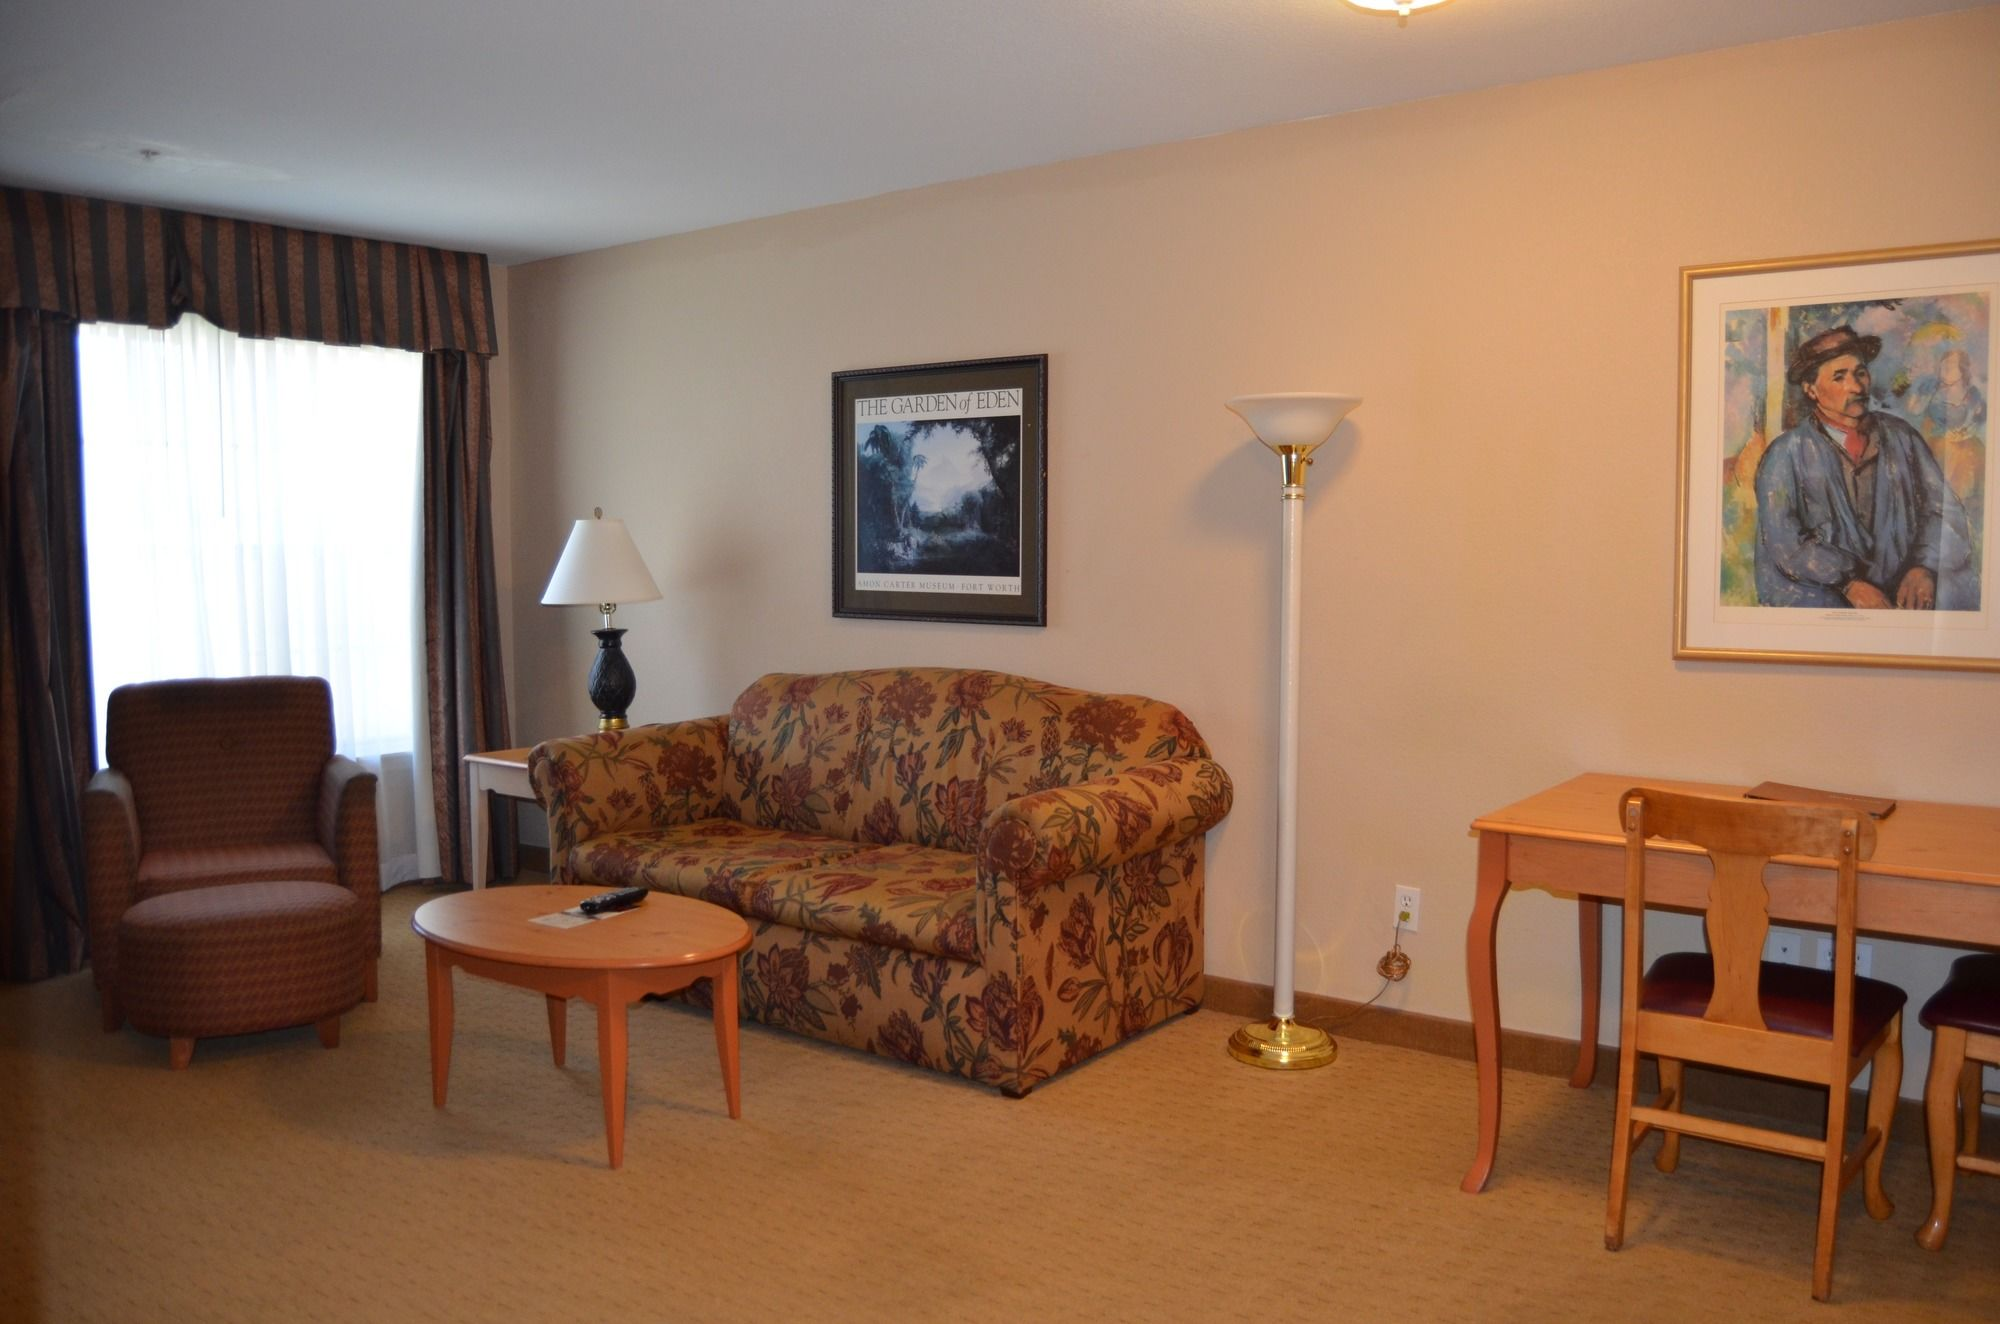 Bedford Hotel Coupons for Bedford, Texas - FreeHotelCoupons.com